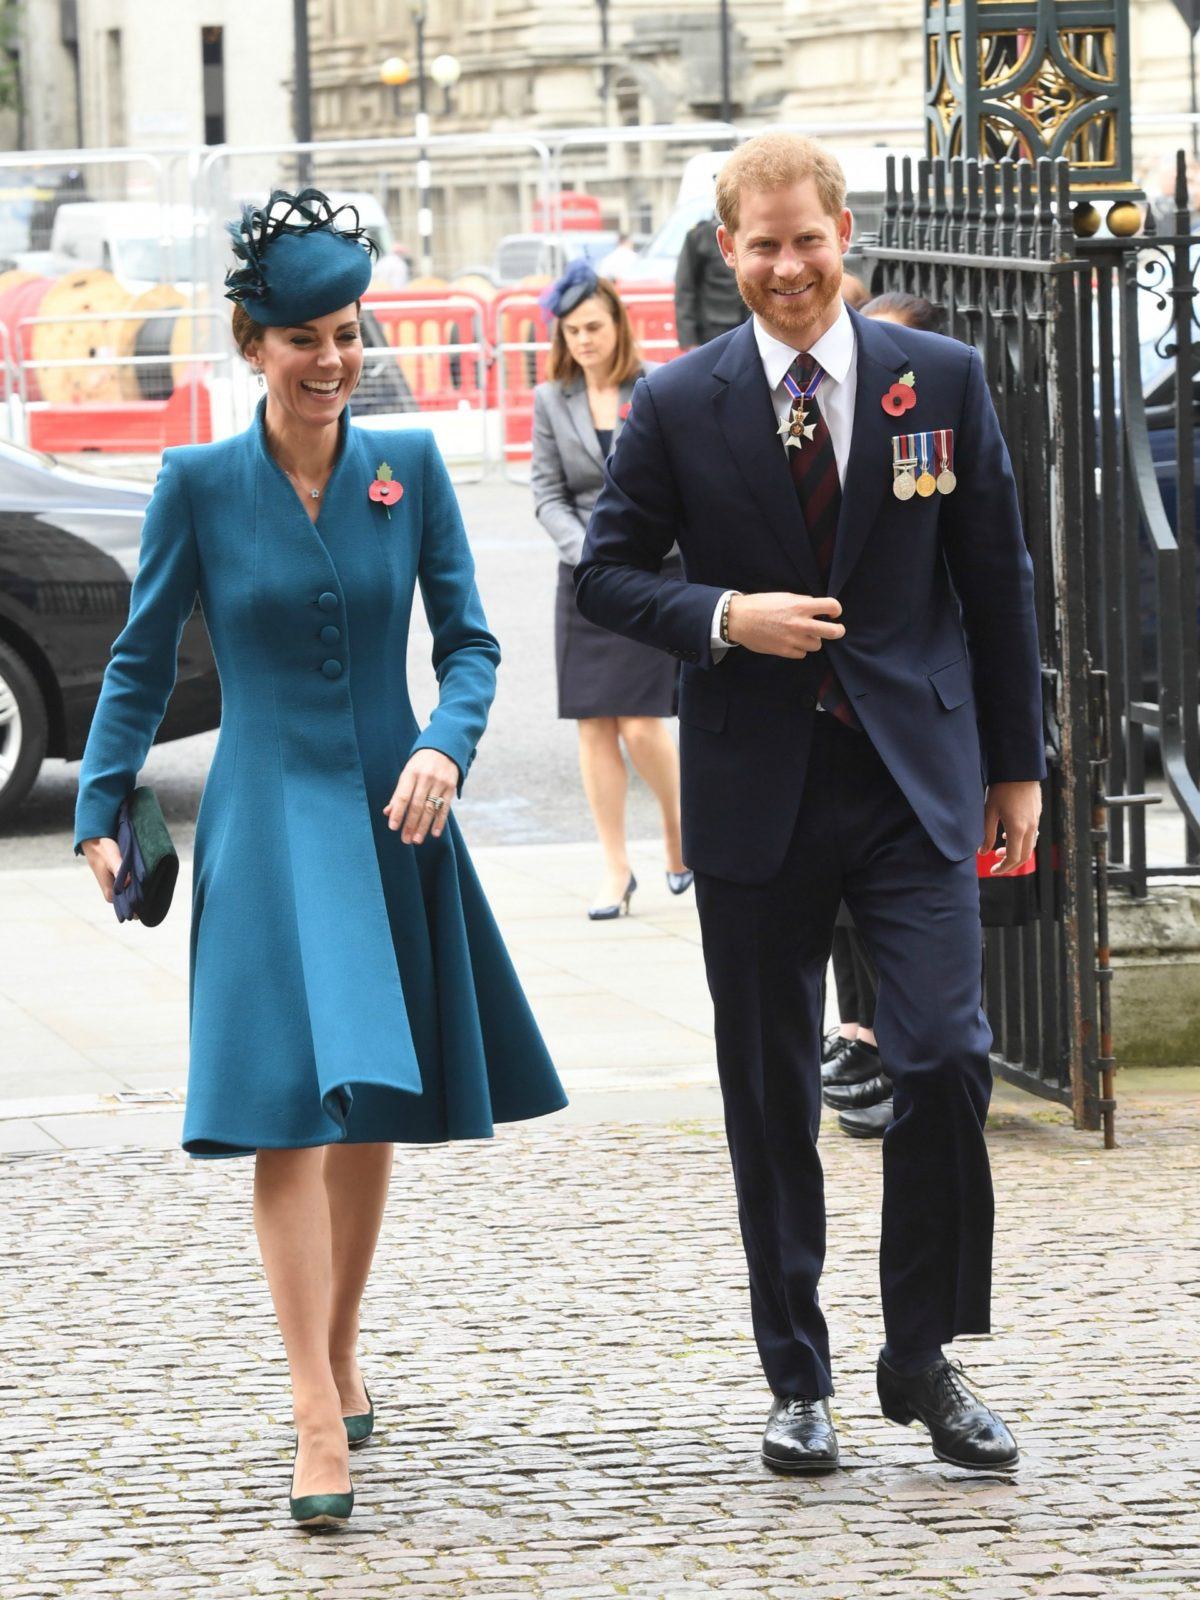 Prince Harry and the Duchess of Cambridge at Westminster Abbey for Thursday's Anzac Day service.